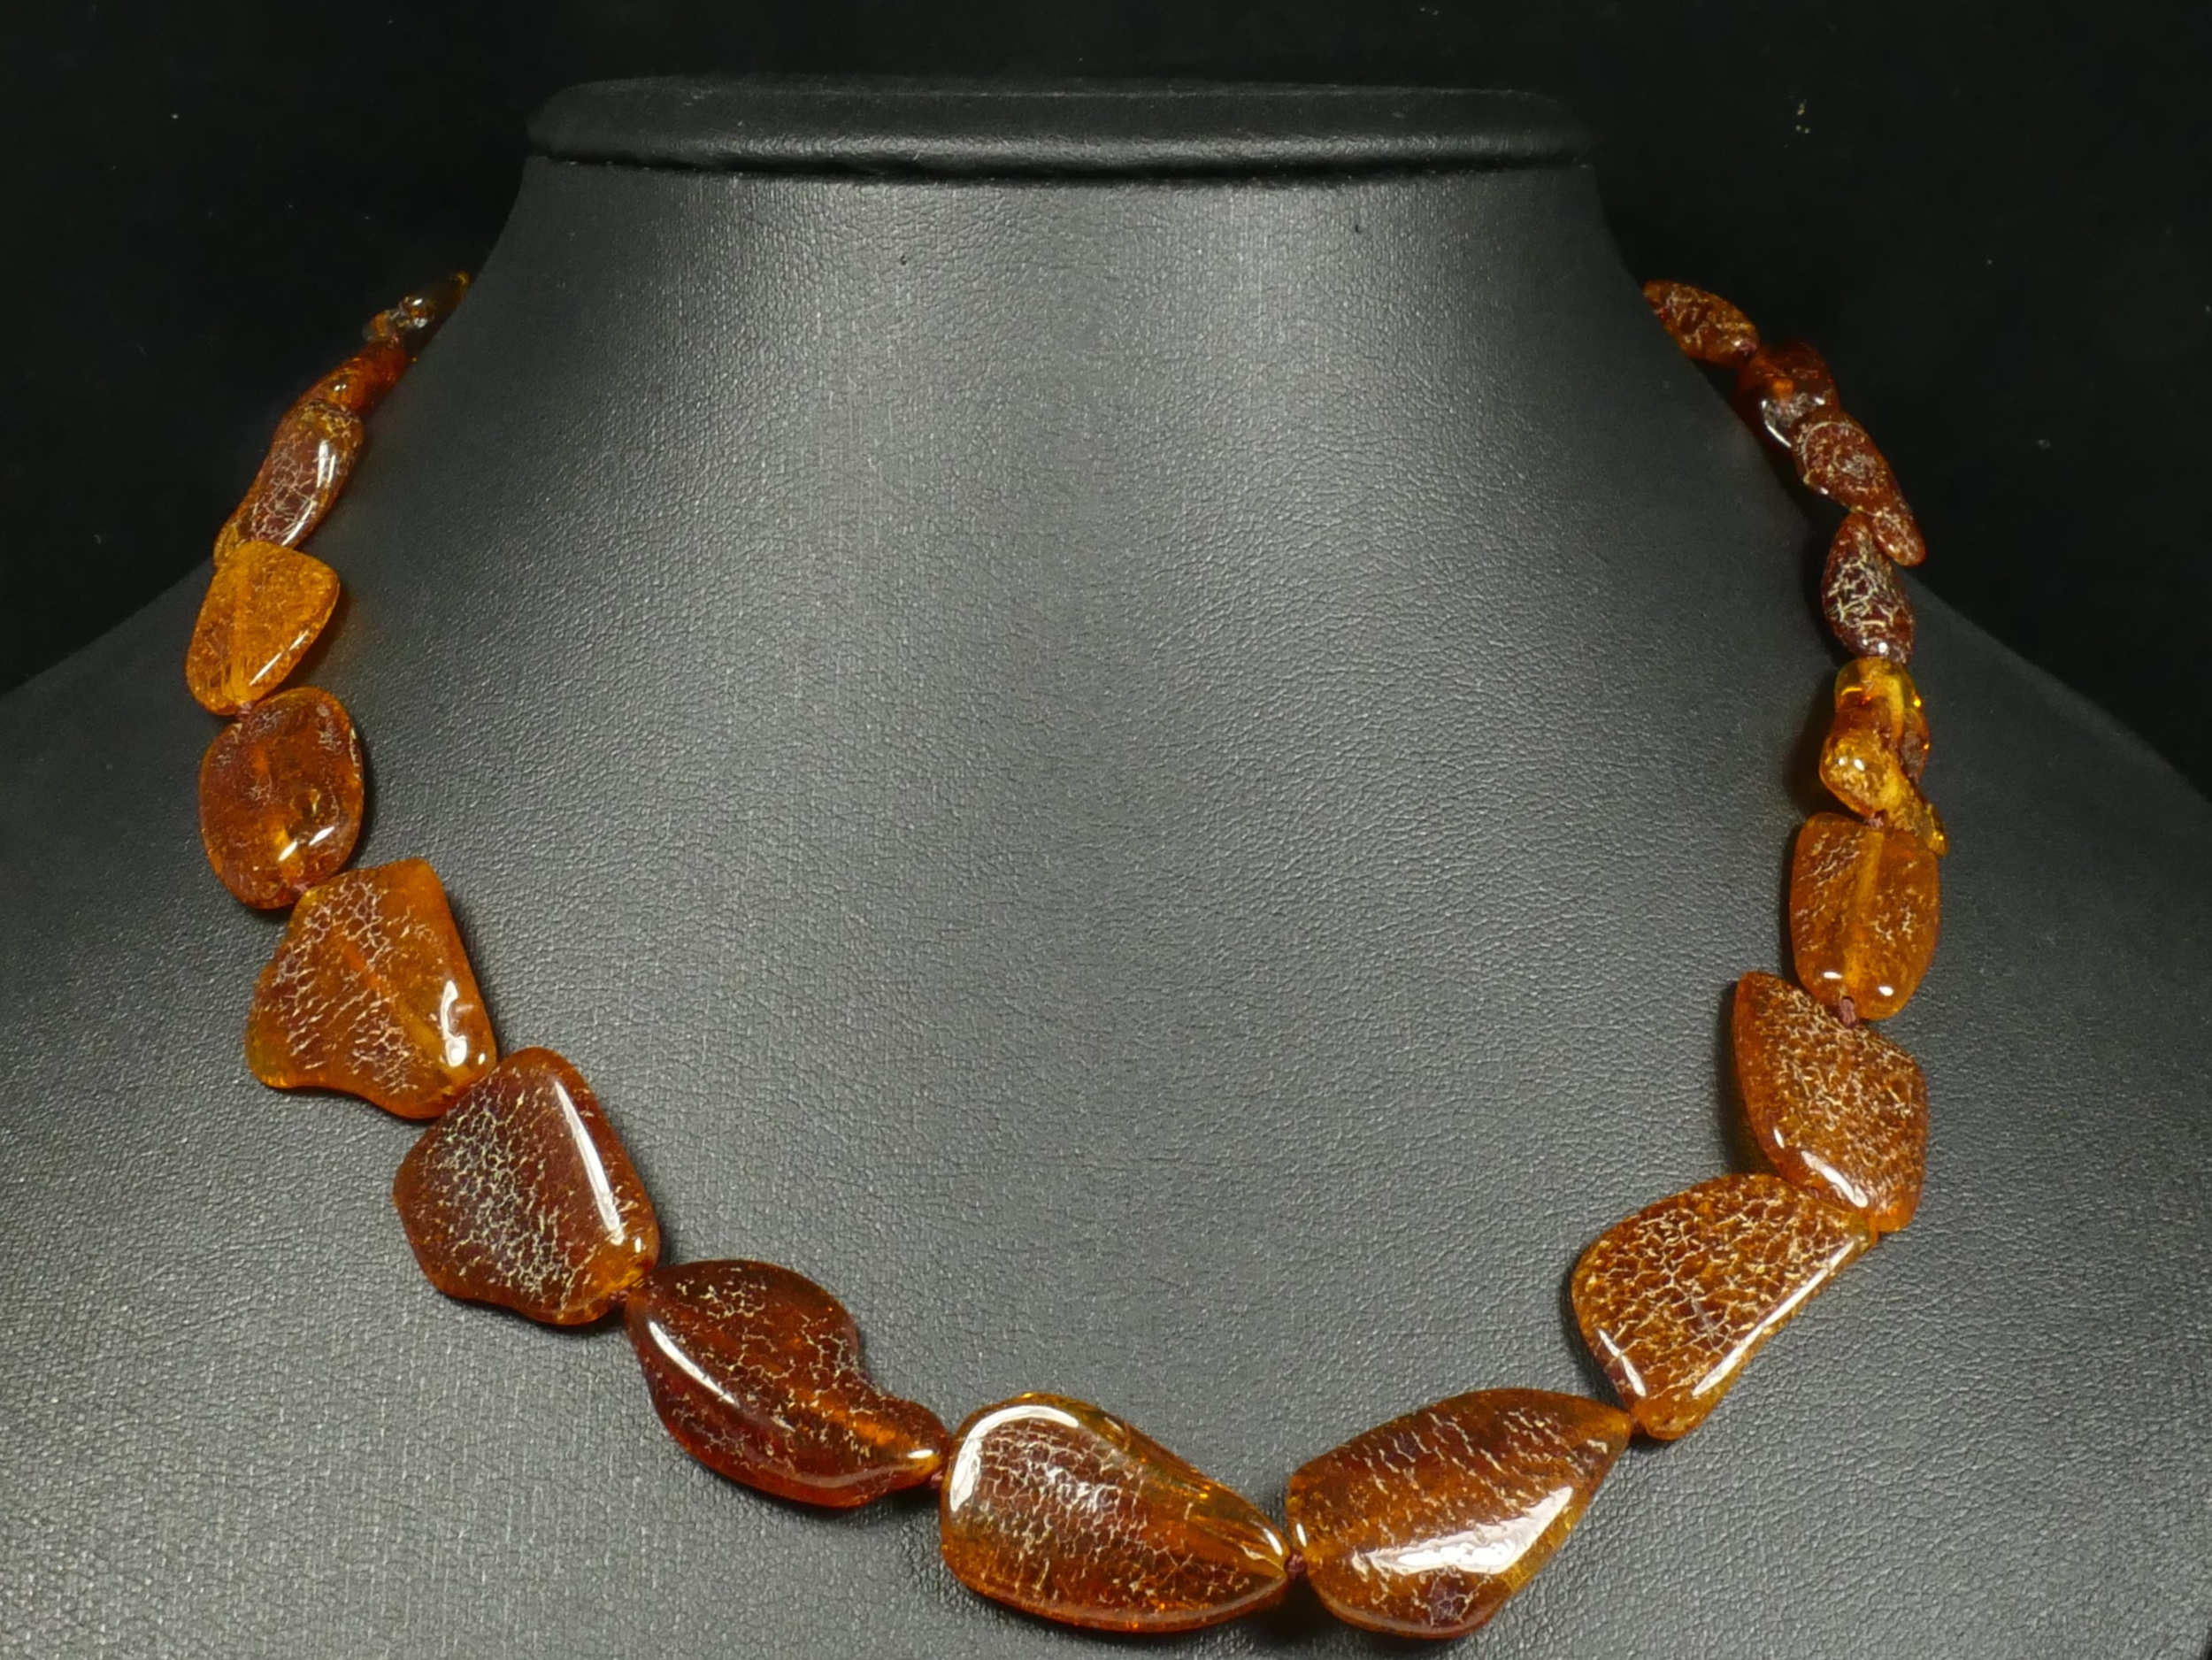 Collier d\'Ambre naturel natif en perle roulé de la Mer Baltique 45cm orange brun plate (#PF79)